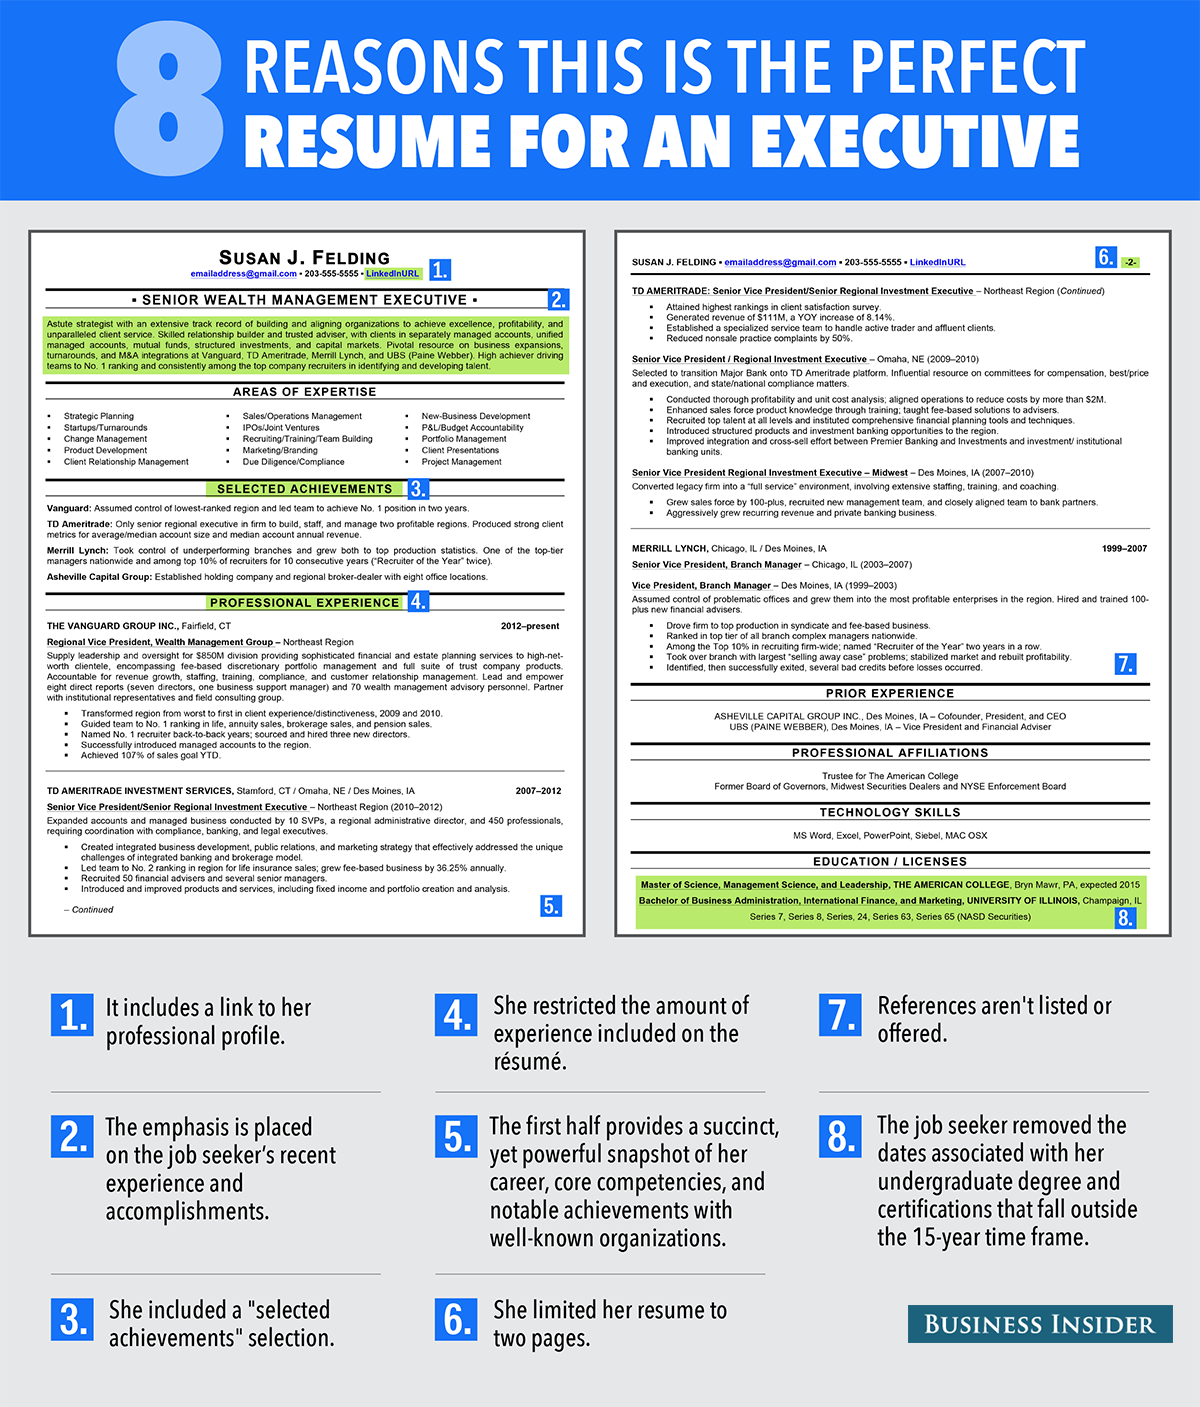 Executive Resume Writing Service stay aware of facts with executive resume writing services 1000 Ideas About Executive Resume On Pinterest Executive Resume Template Perfect Resume And Professional Resume Examples